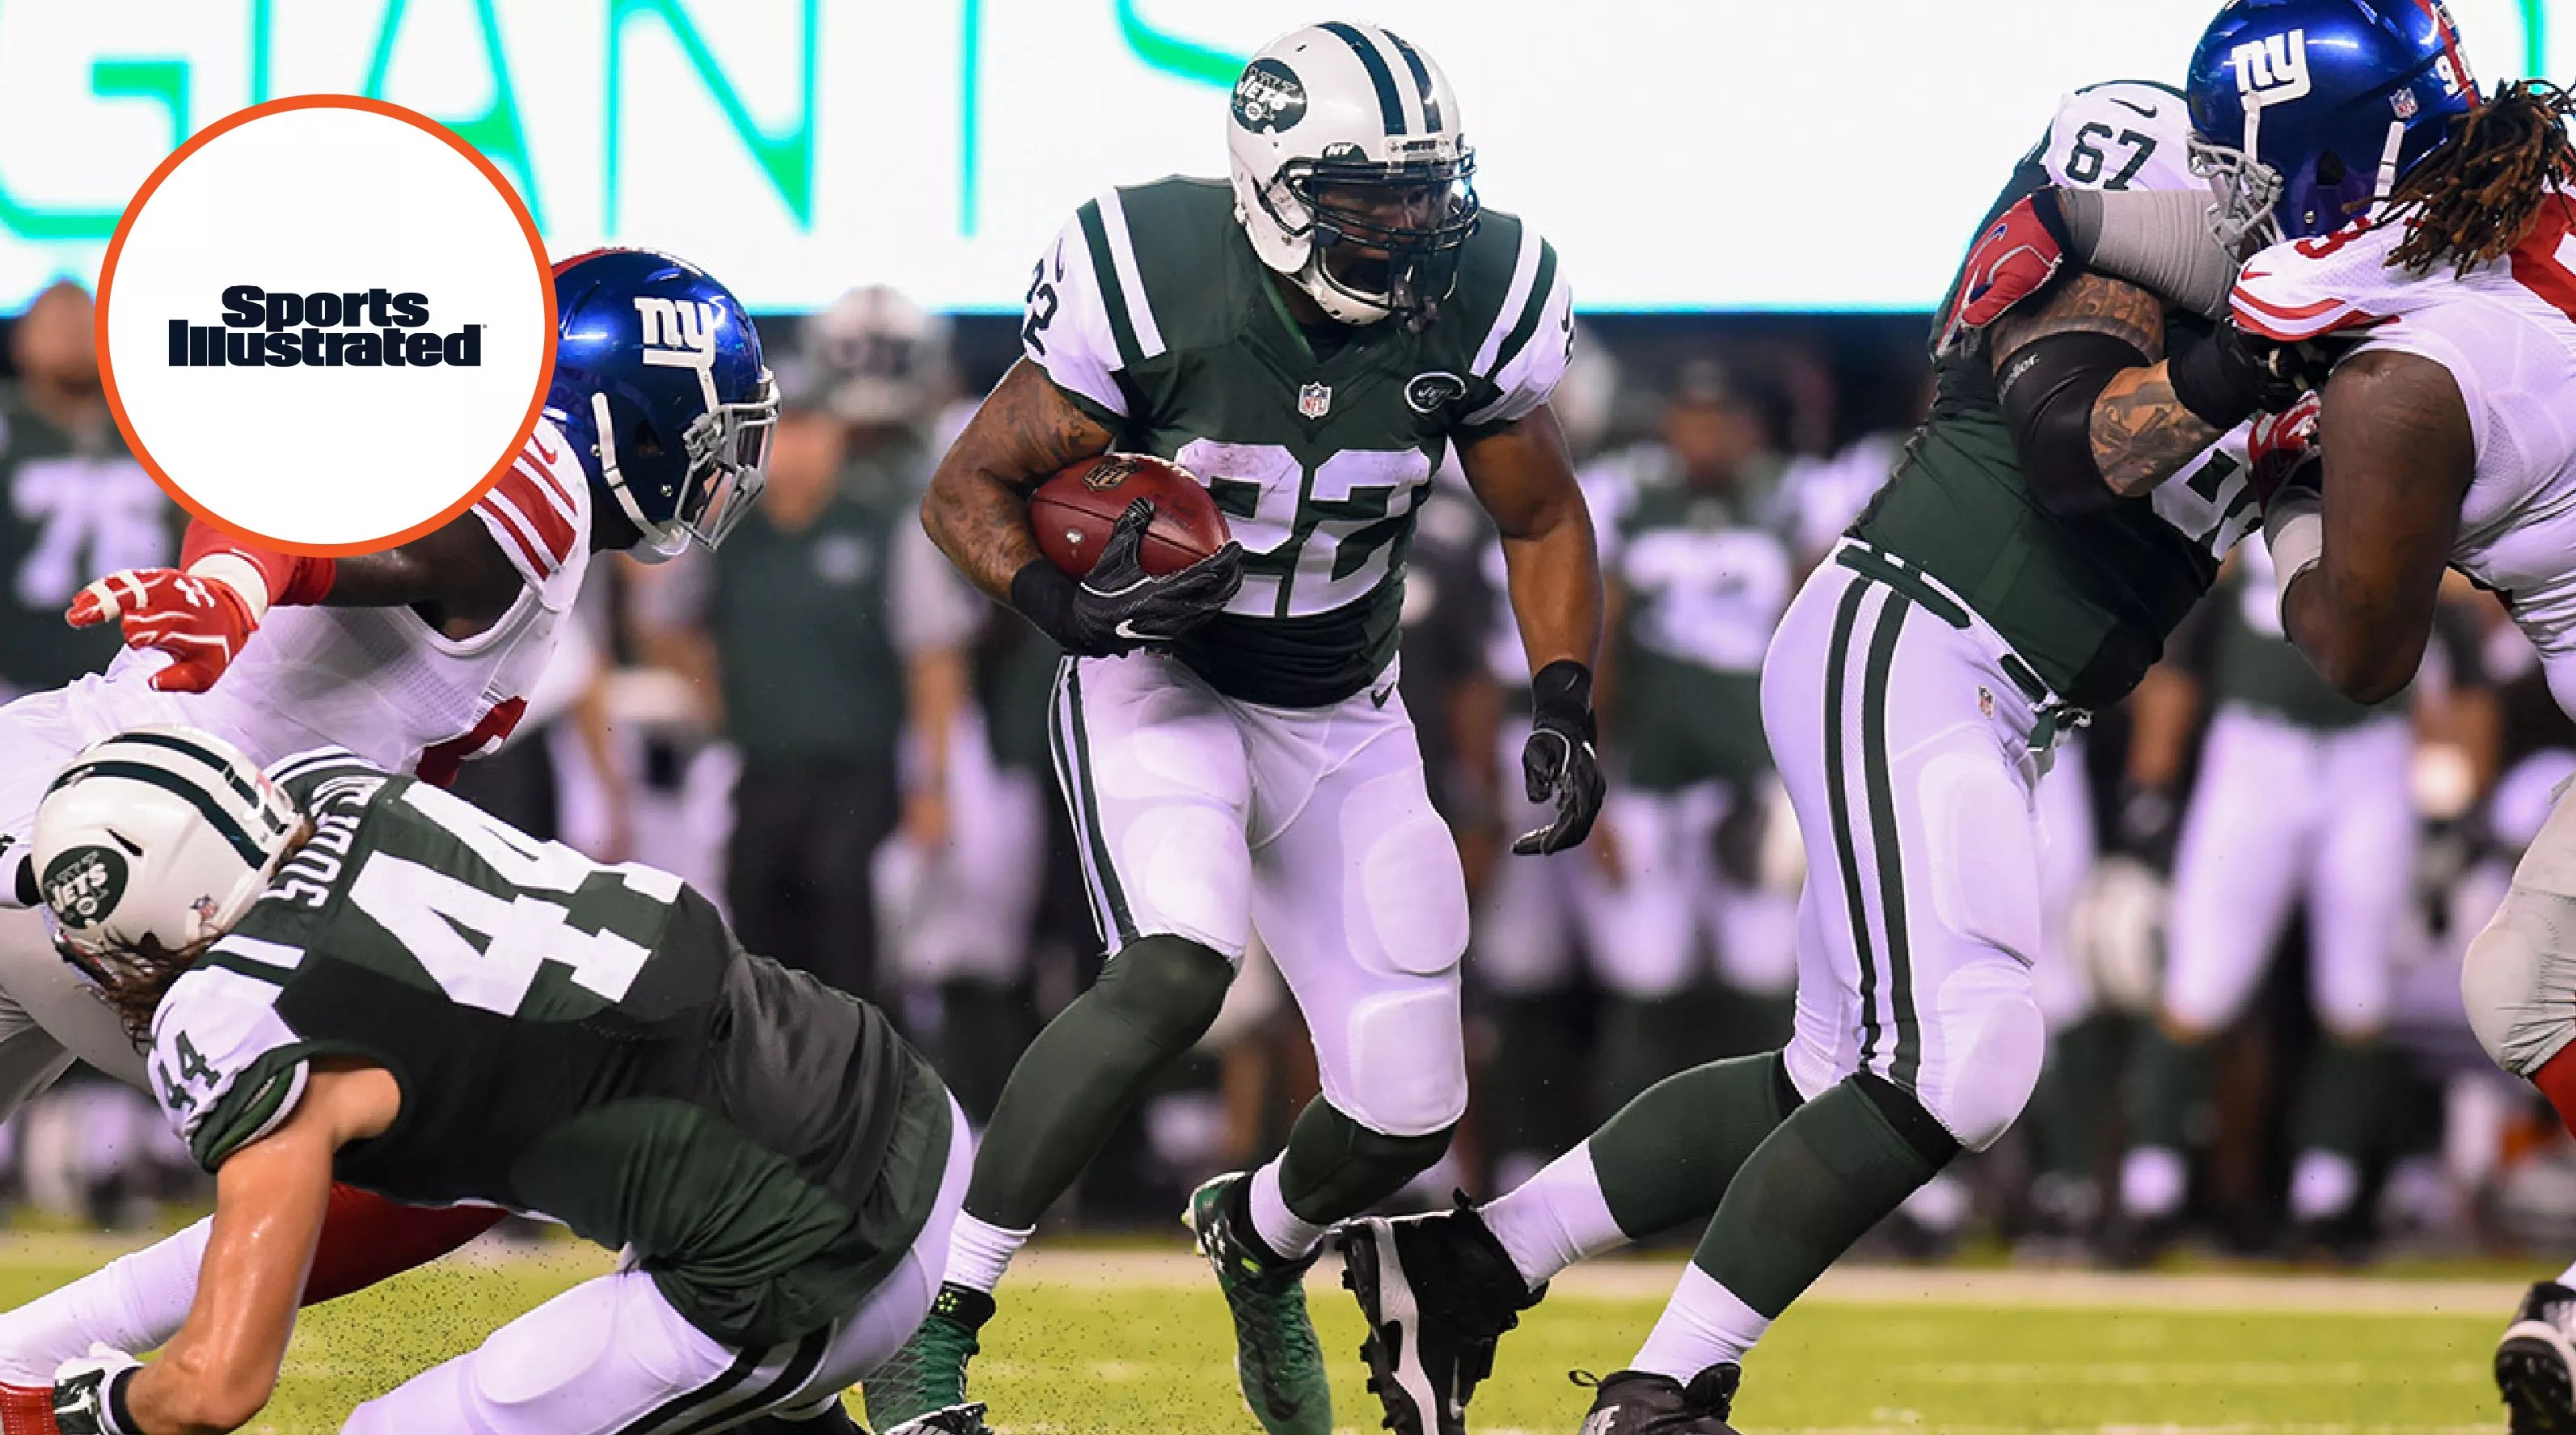 How New York Jets RB Matt Forte Withstands Football's Punishing Hits